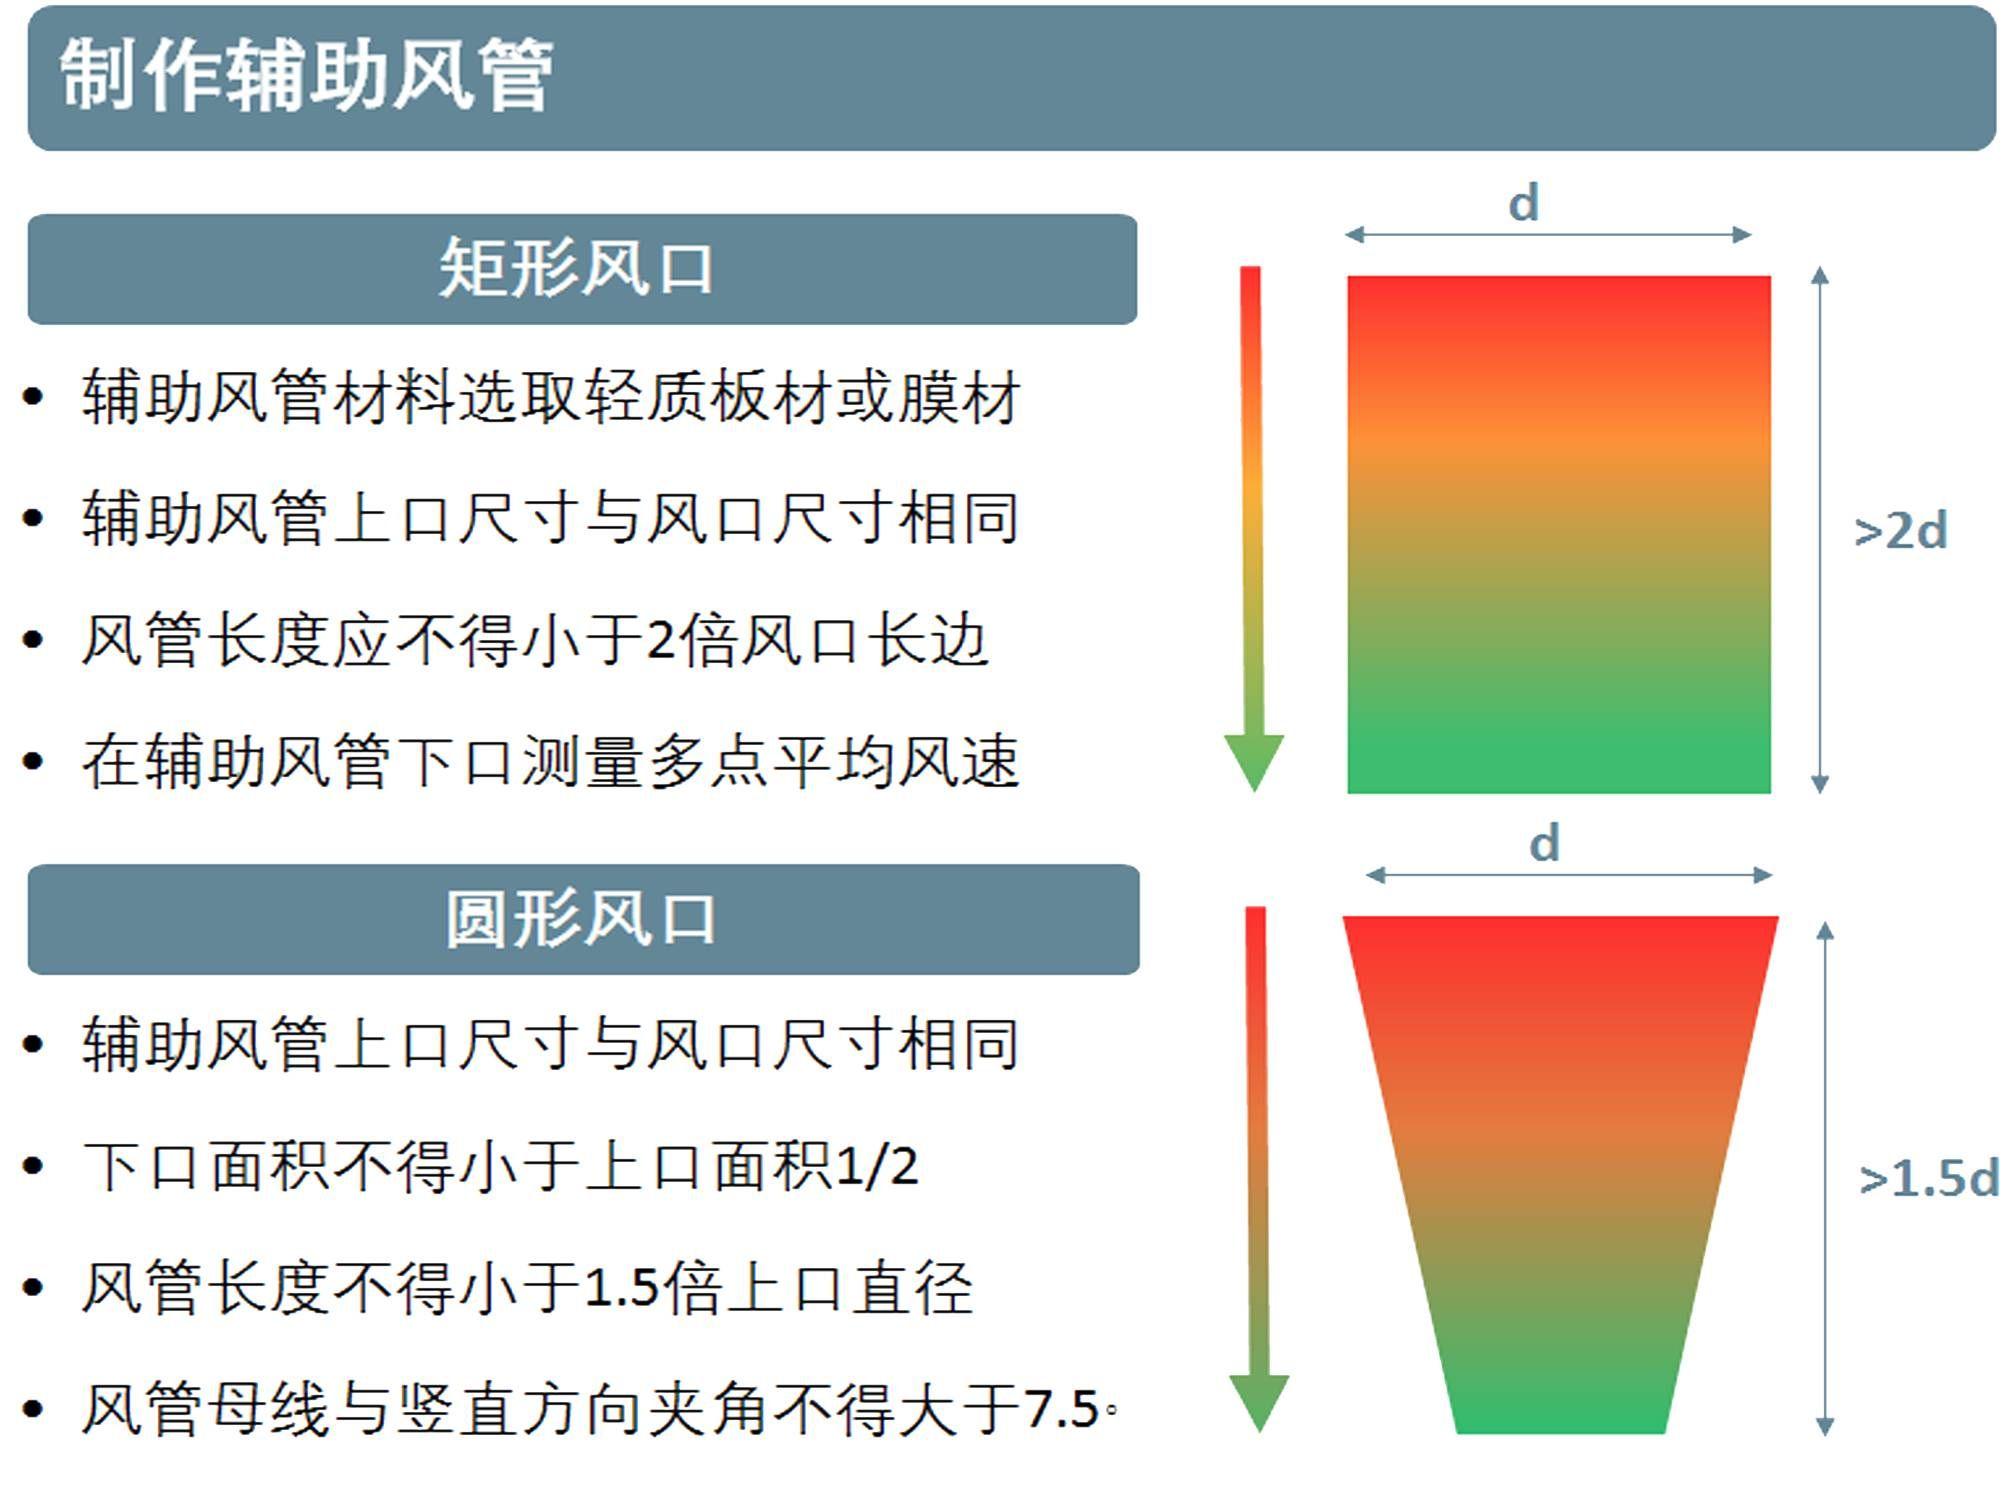 cn-20170928-applications-hvacr-indoor-air-quality06.png